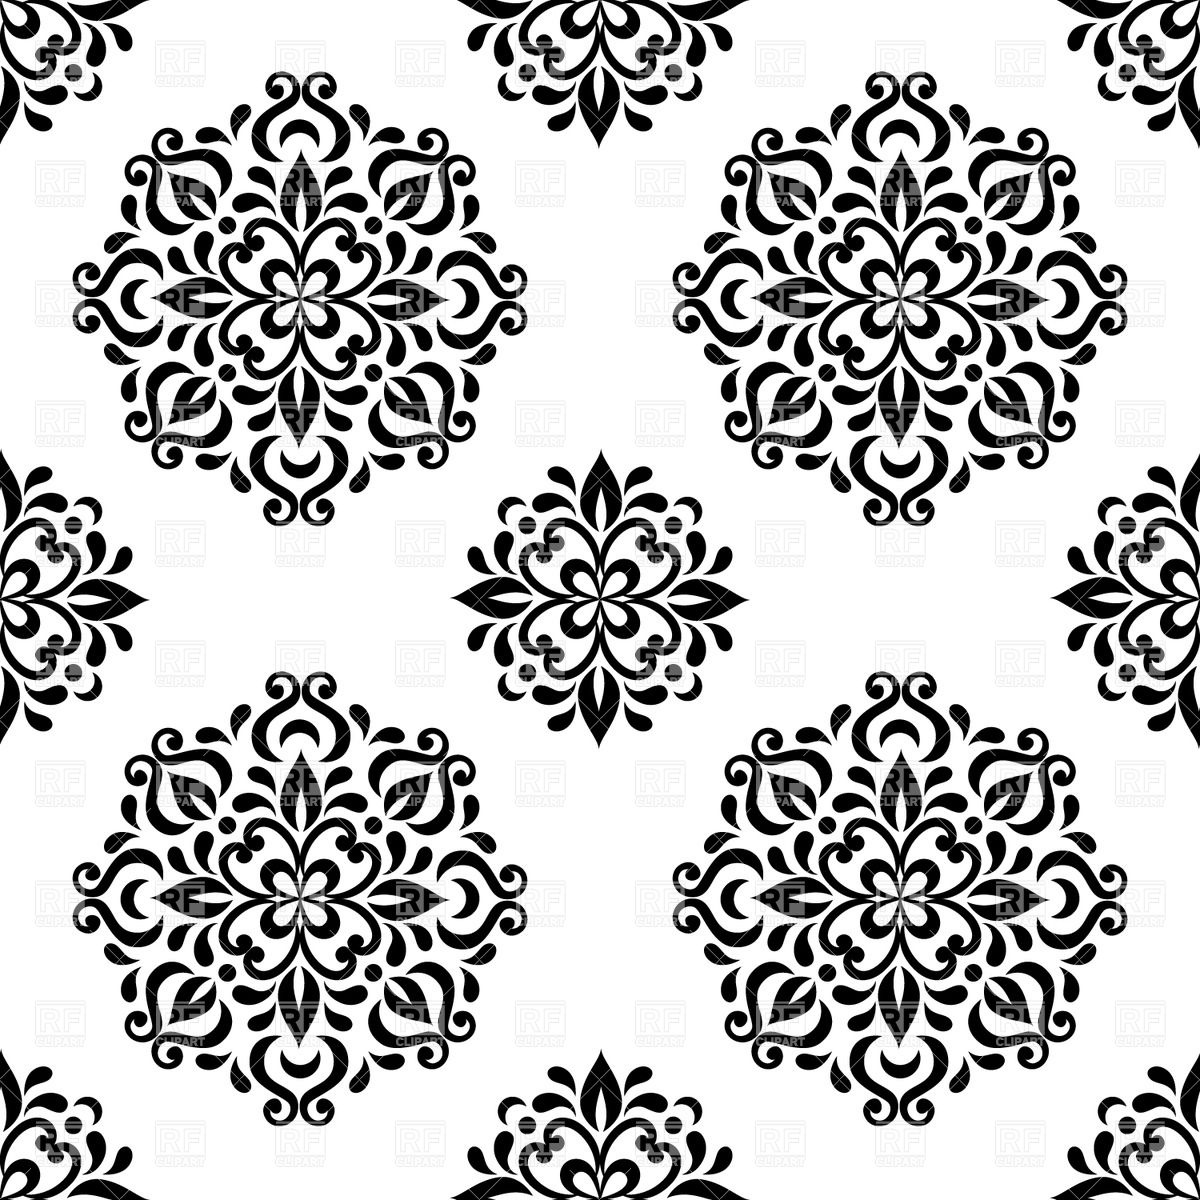 2146002747191844503 further Planes together with White Wallpaper Texture moreover Rose Frames besides Mandala Wallpaper Black And White. on disney backgrounds